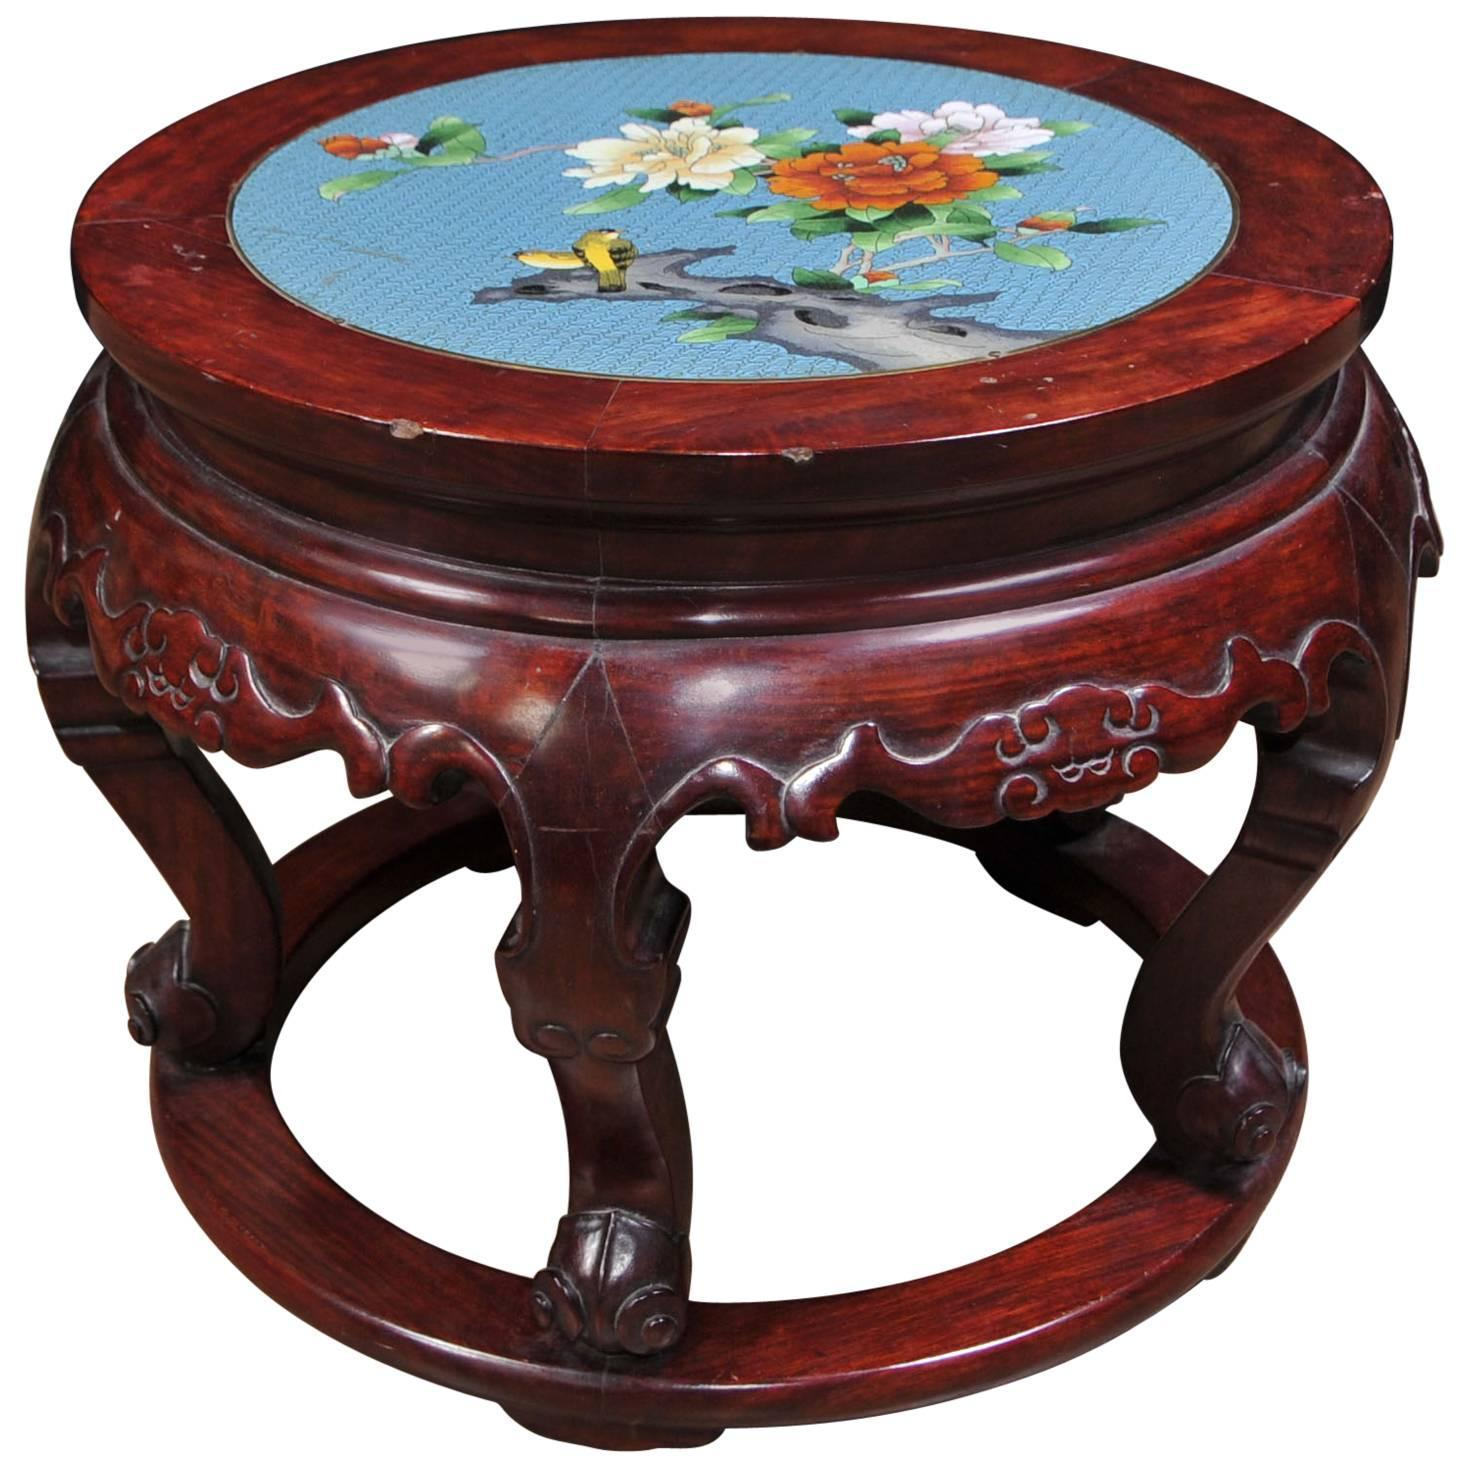 Antique chinese cloisonn hardwood pedestal stand table for Cloison stand